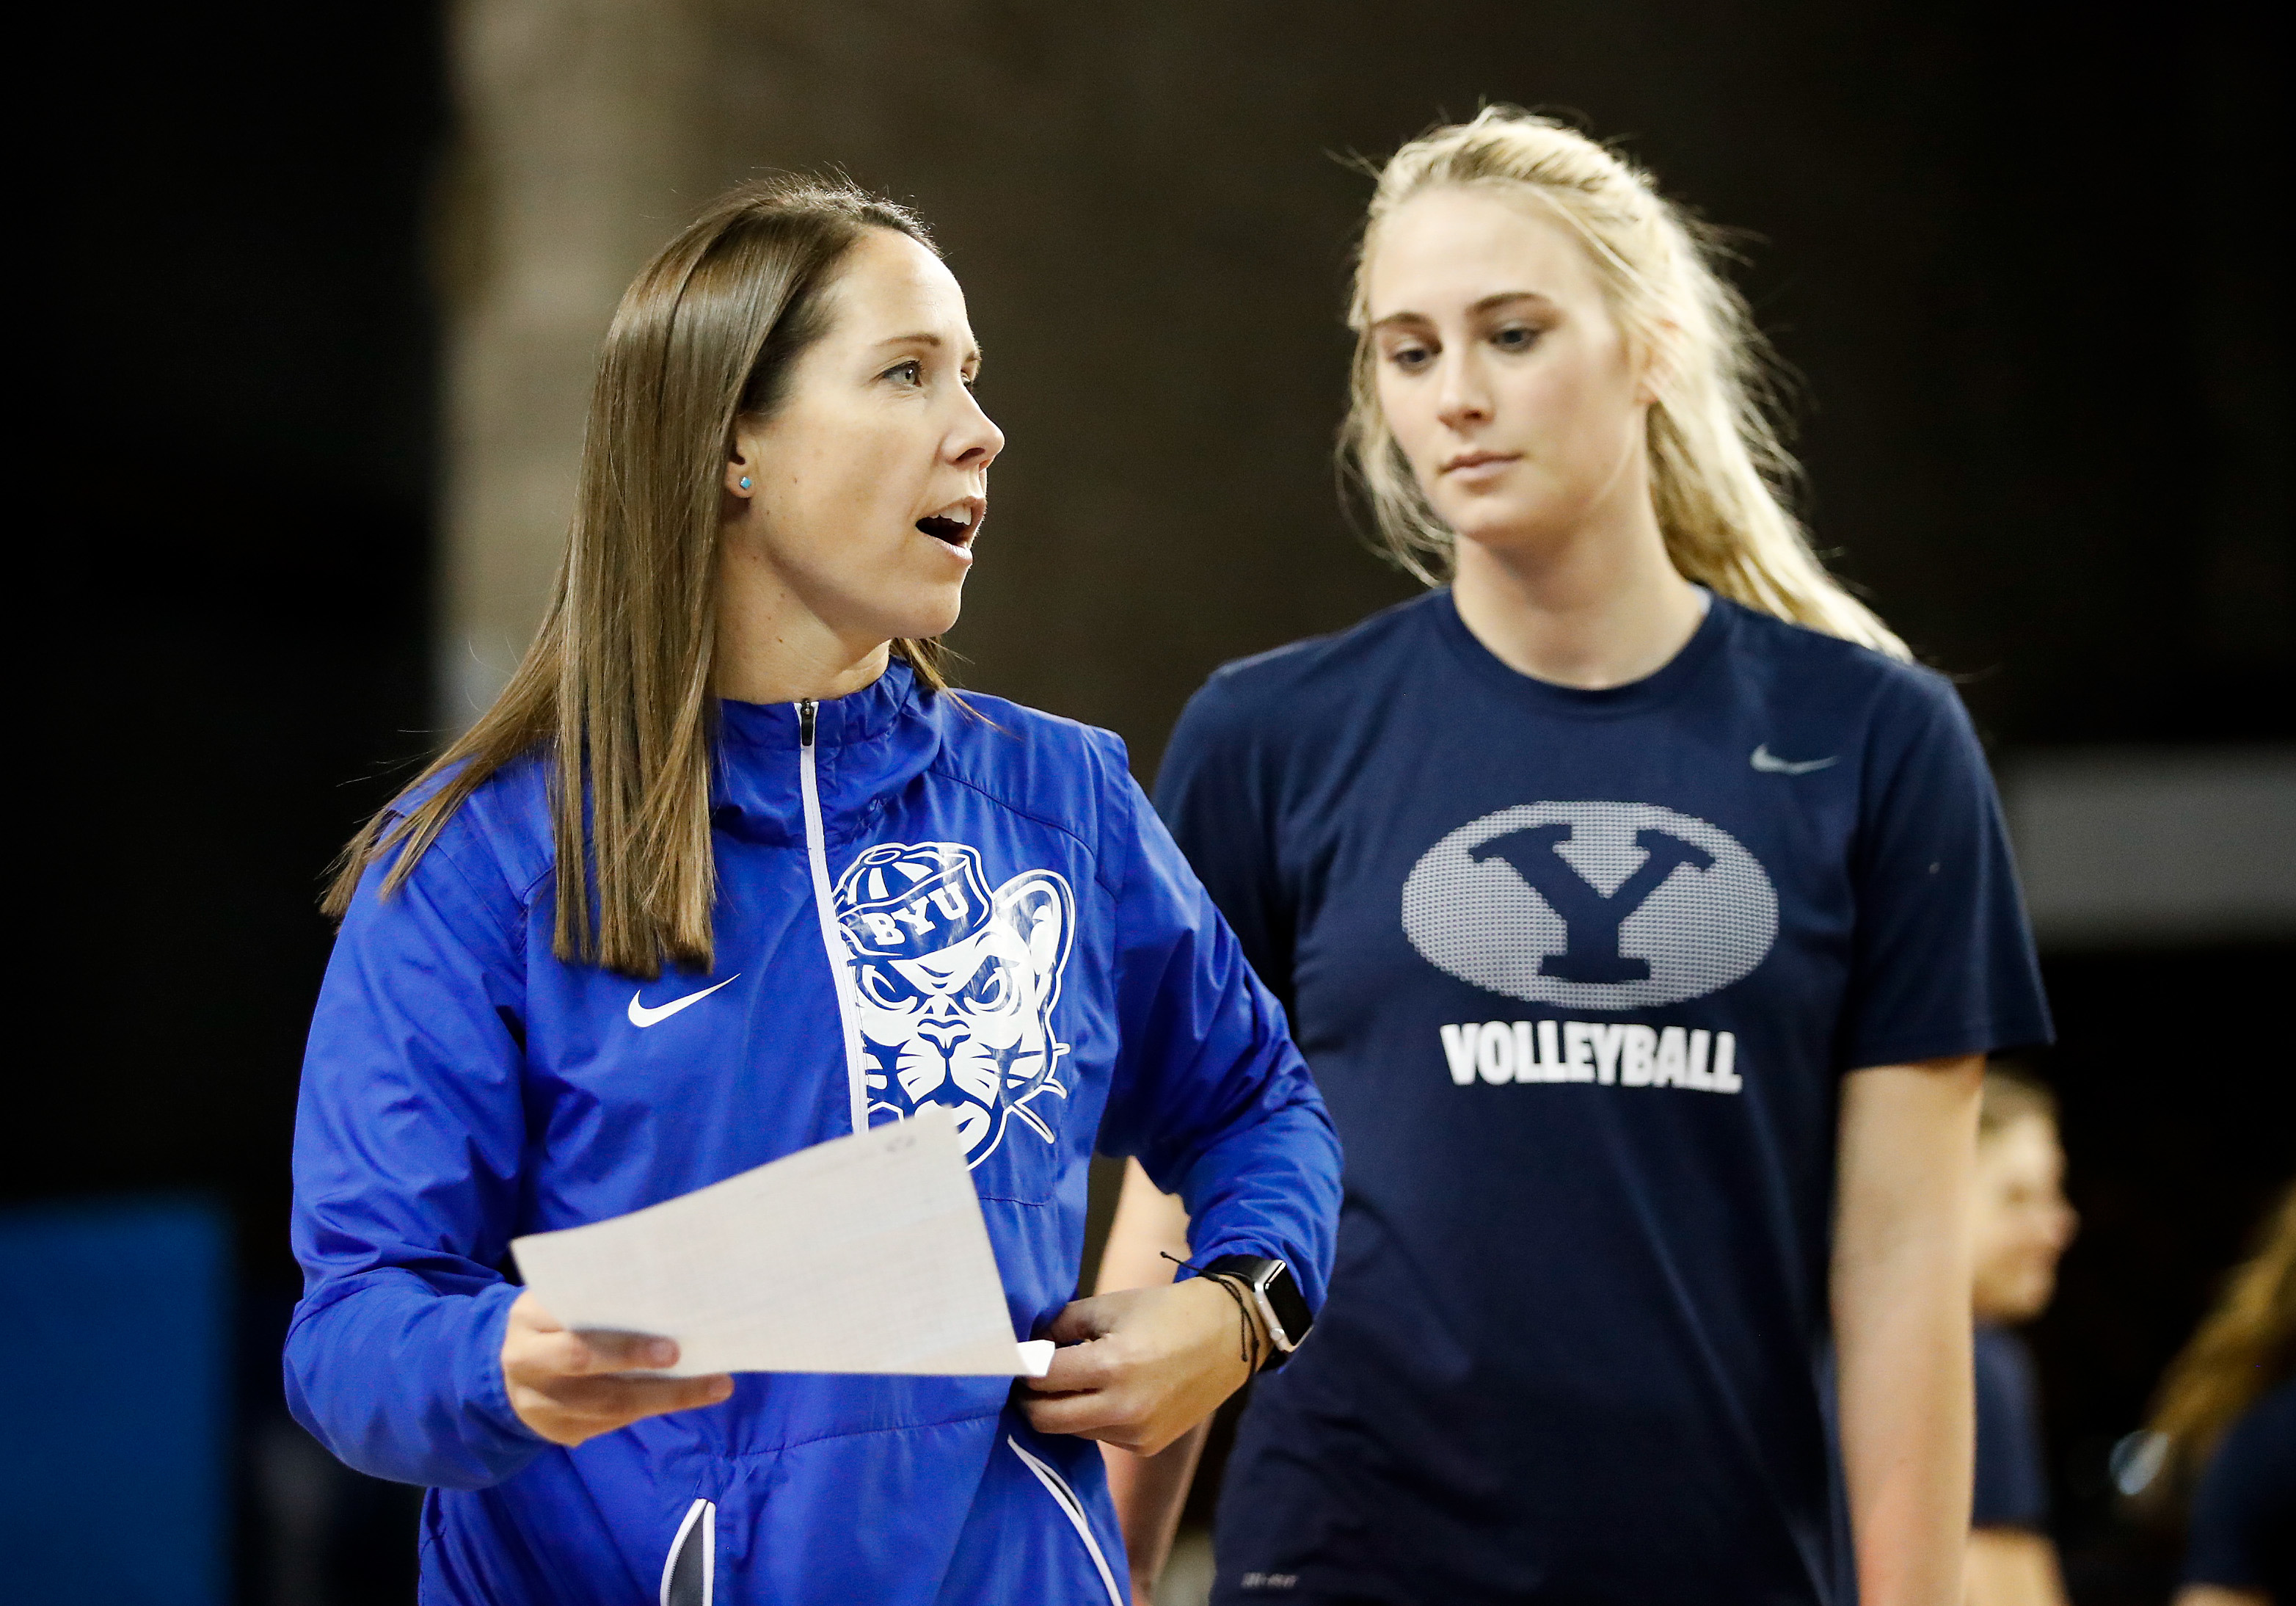 BYU Head Coach Heather Olmstead directs BYU's practice. The BYU Women's Volleyball Team held a press conference and an open practice on Thursday December 7, 2017 in Lexington, Kentucky's Memorial Coliseum.